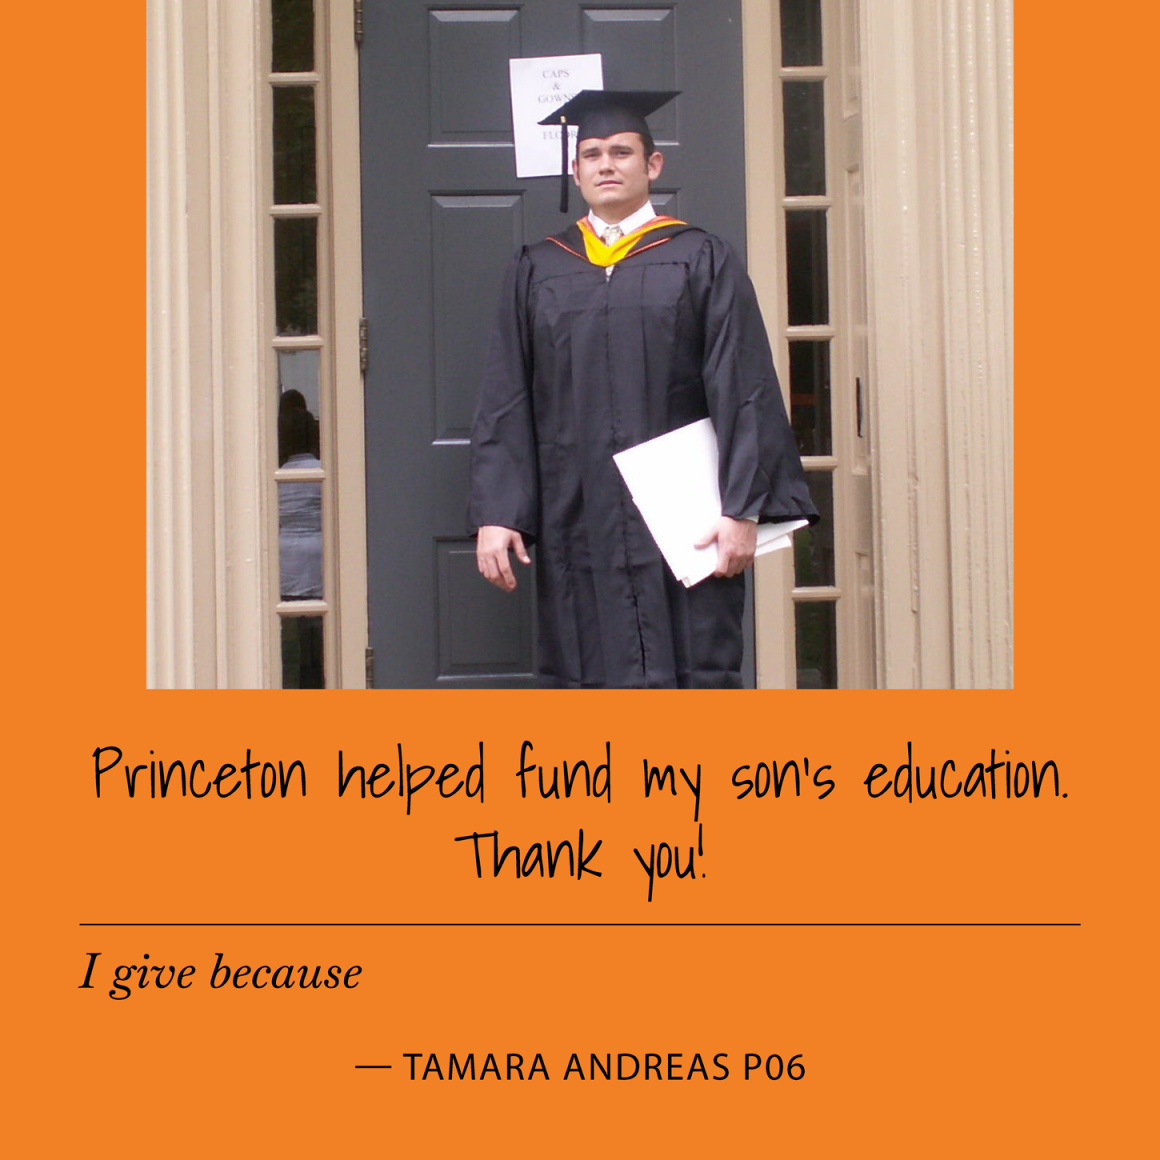 """I give because Princeton helped fund my son's education. Thank you!"" Tamara Andreas P06"